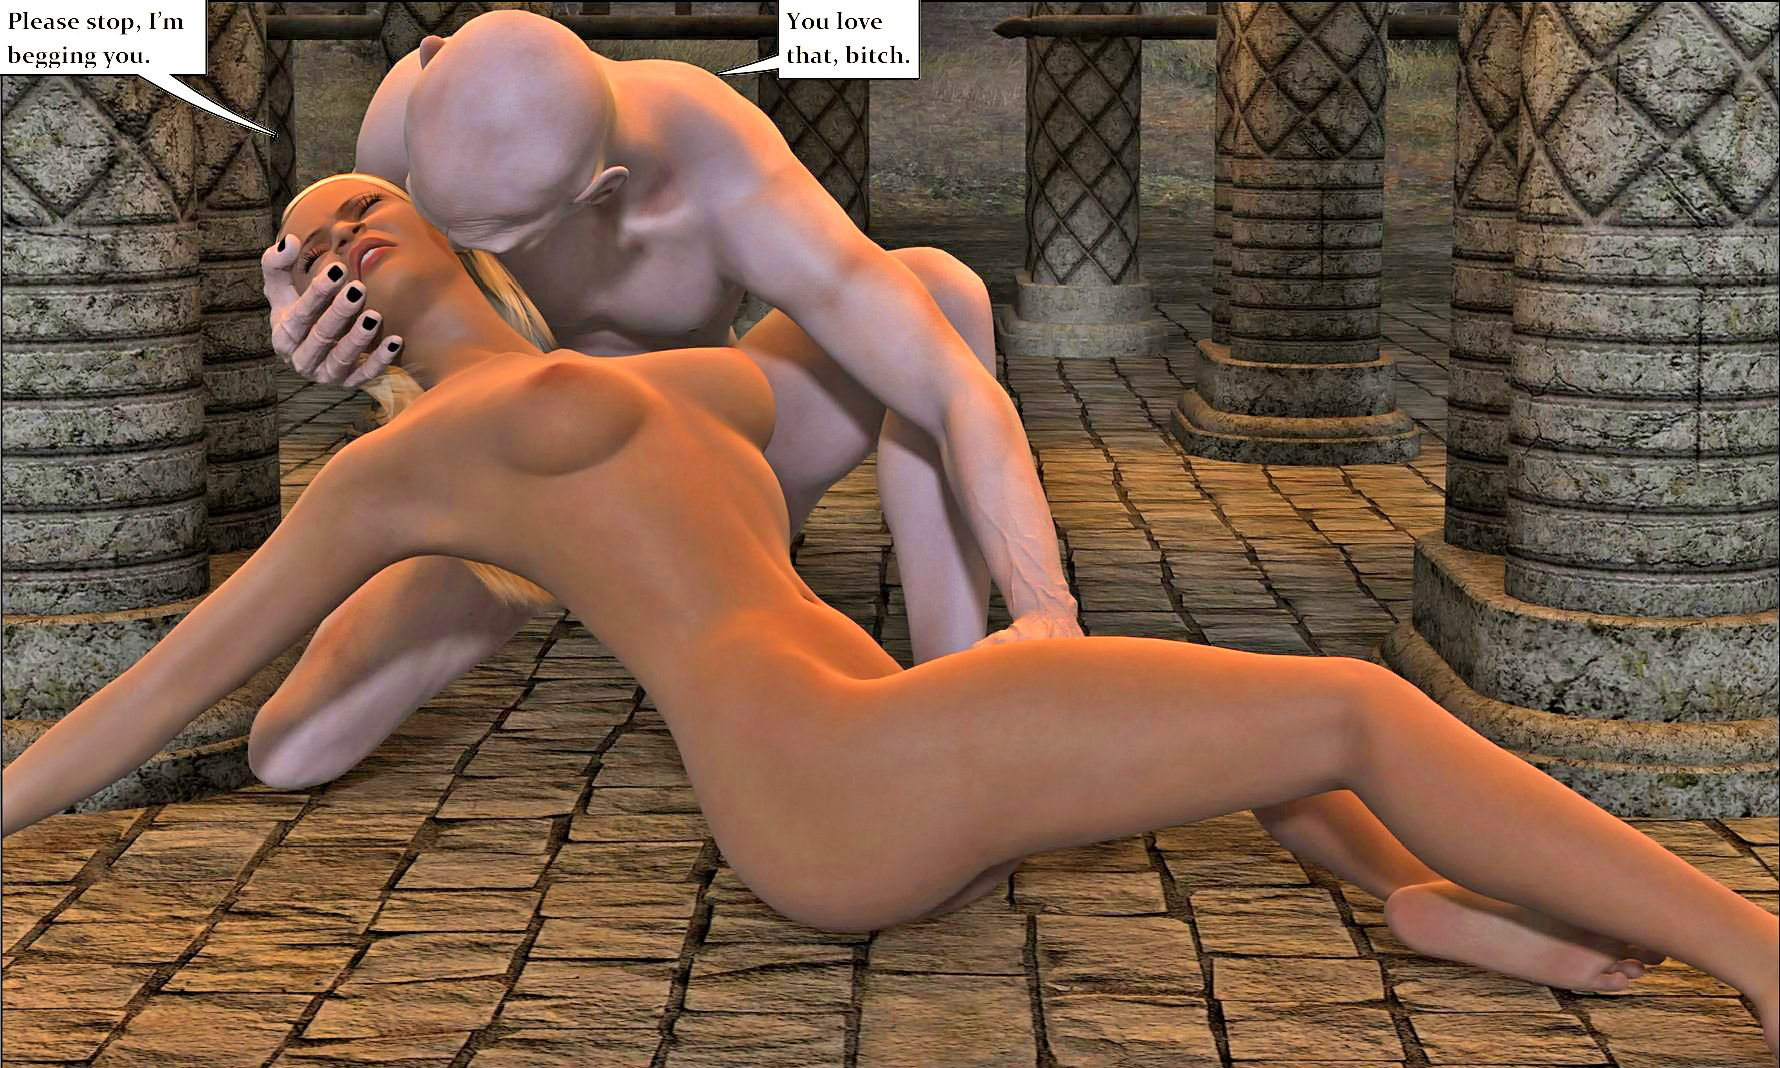 Tomb ride 3d sex video download naked pics